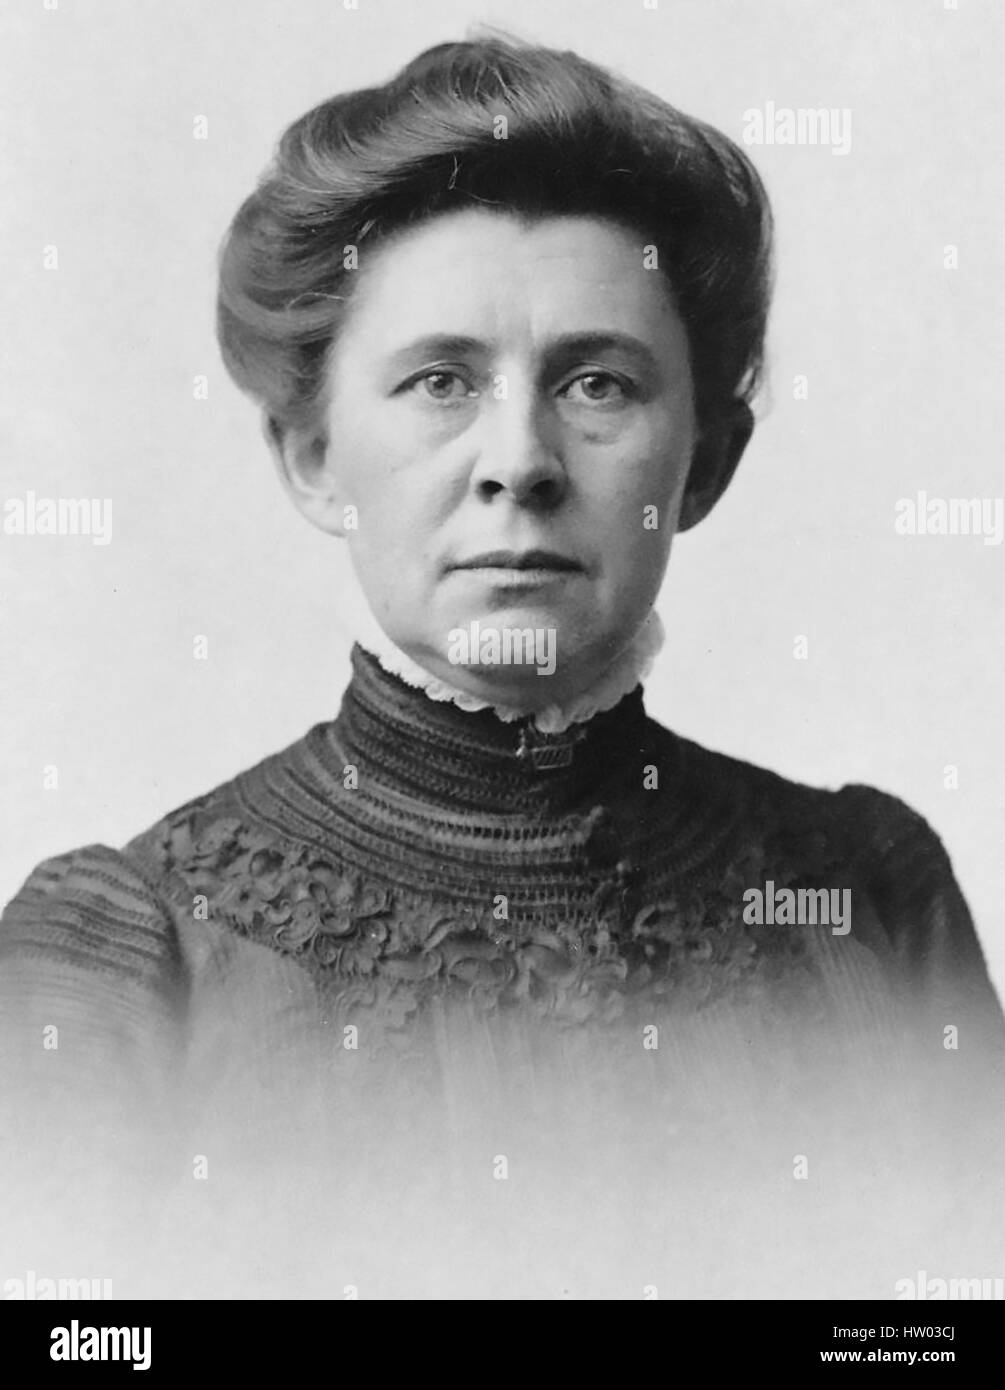 IDA TARBELL (1857-1944) American teacher and investigative journalist in 1904 - Stock Image